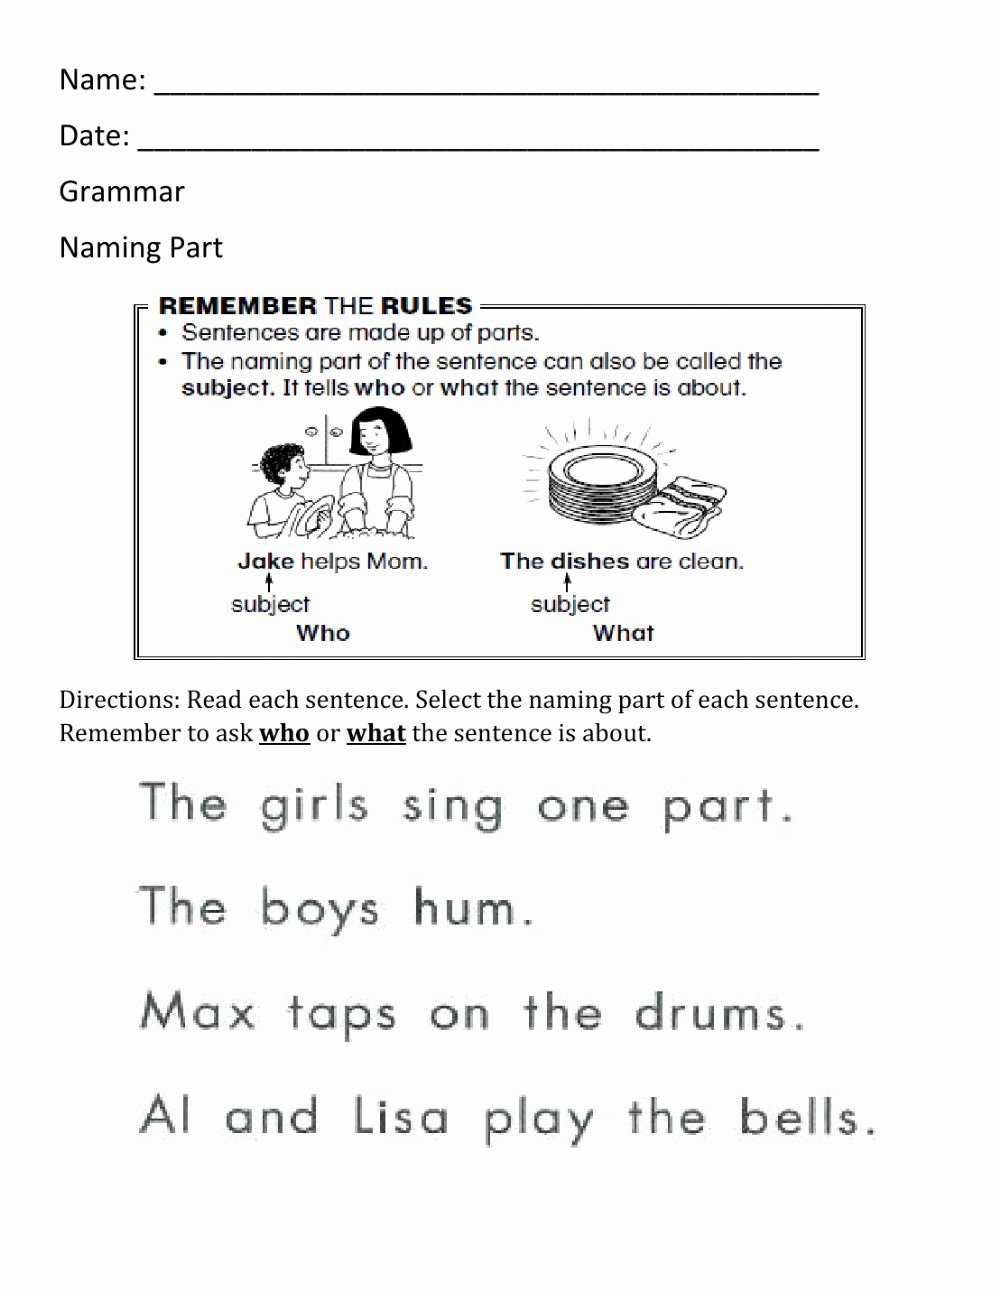 Parts Of A Sentence Worksheet Kids Naming Part Worksheet 1 Interactive Worksheet